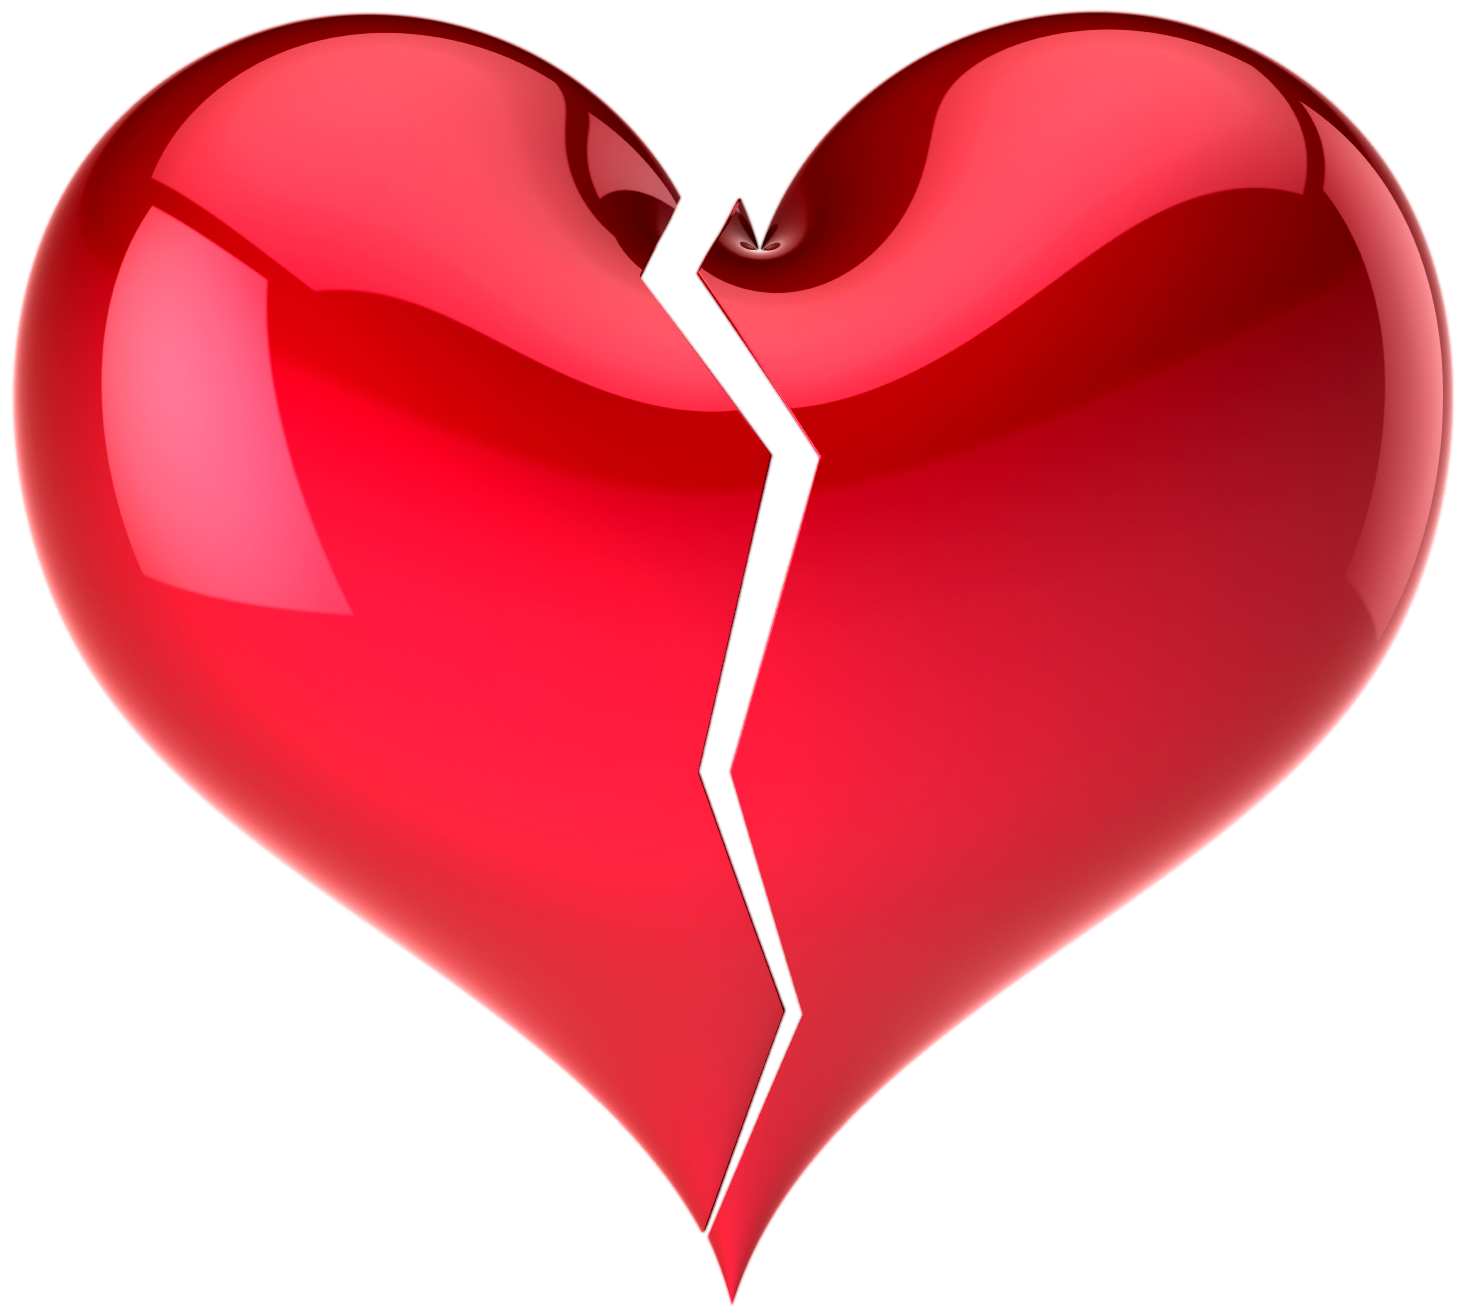 Heart png image . Person clipart broken hearted